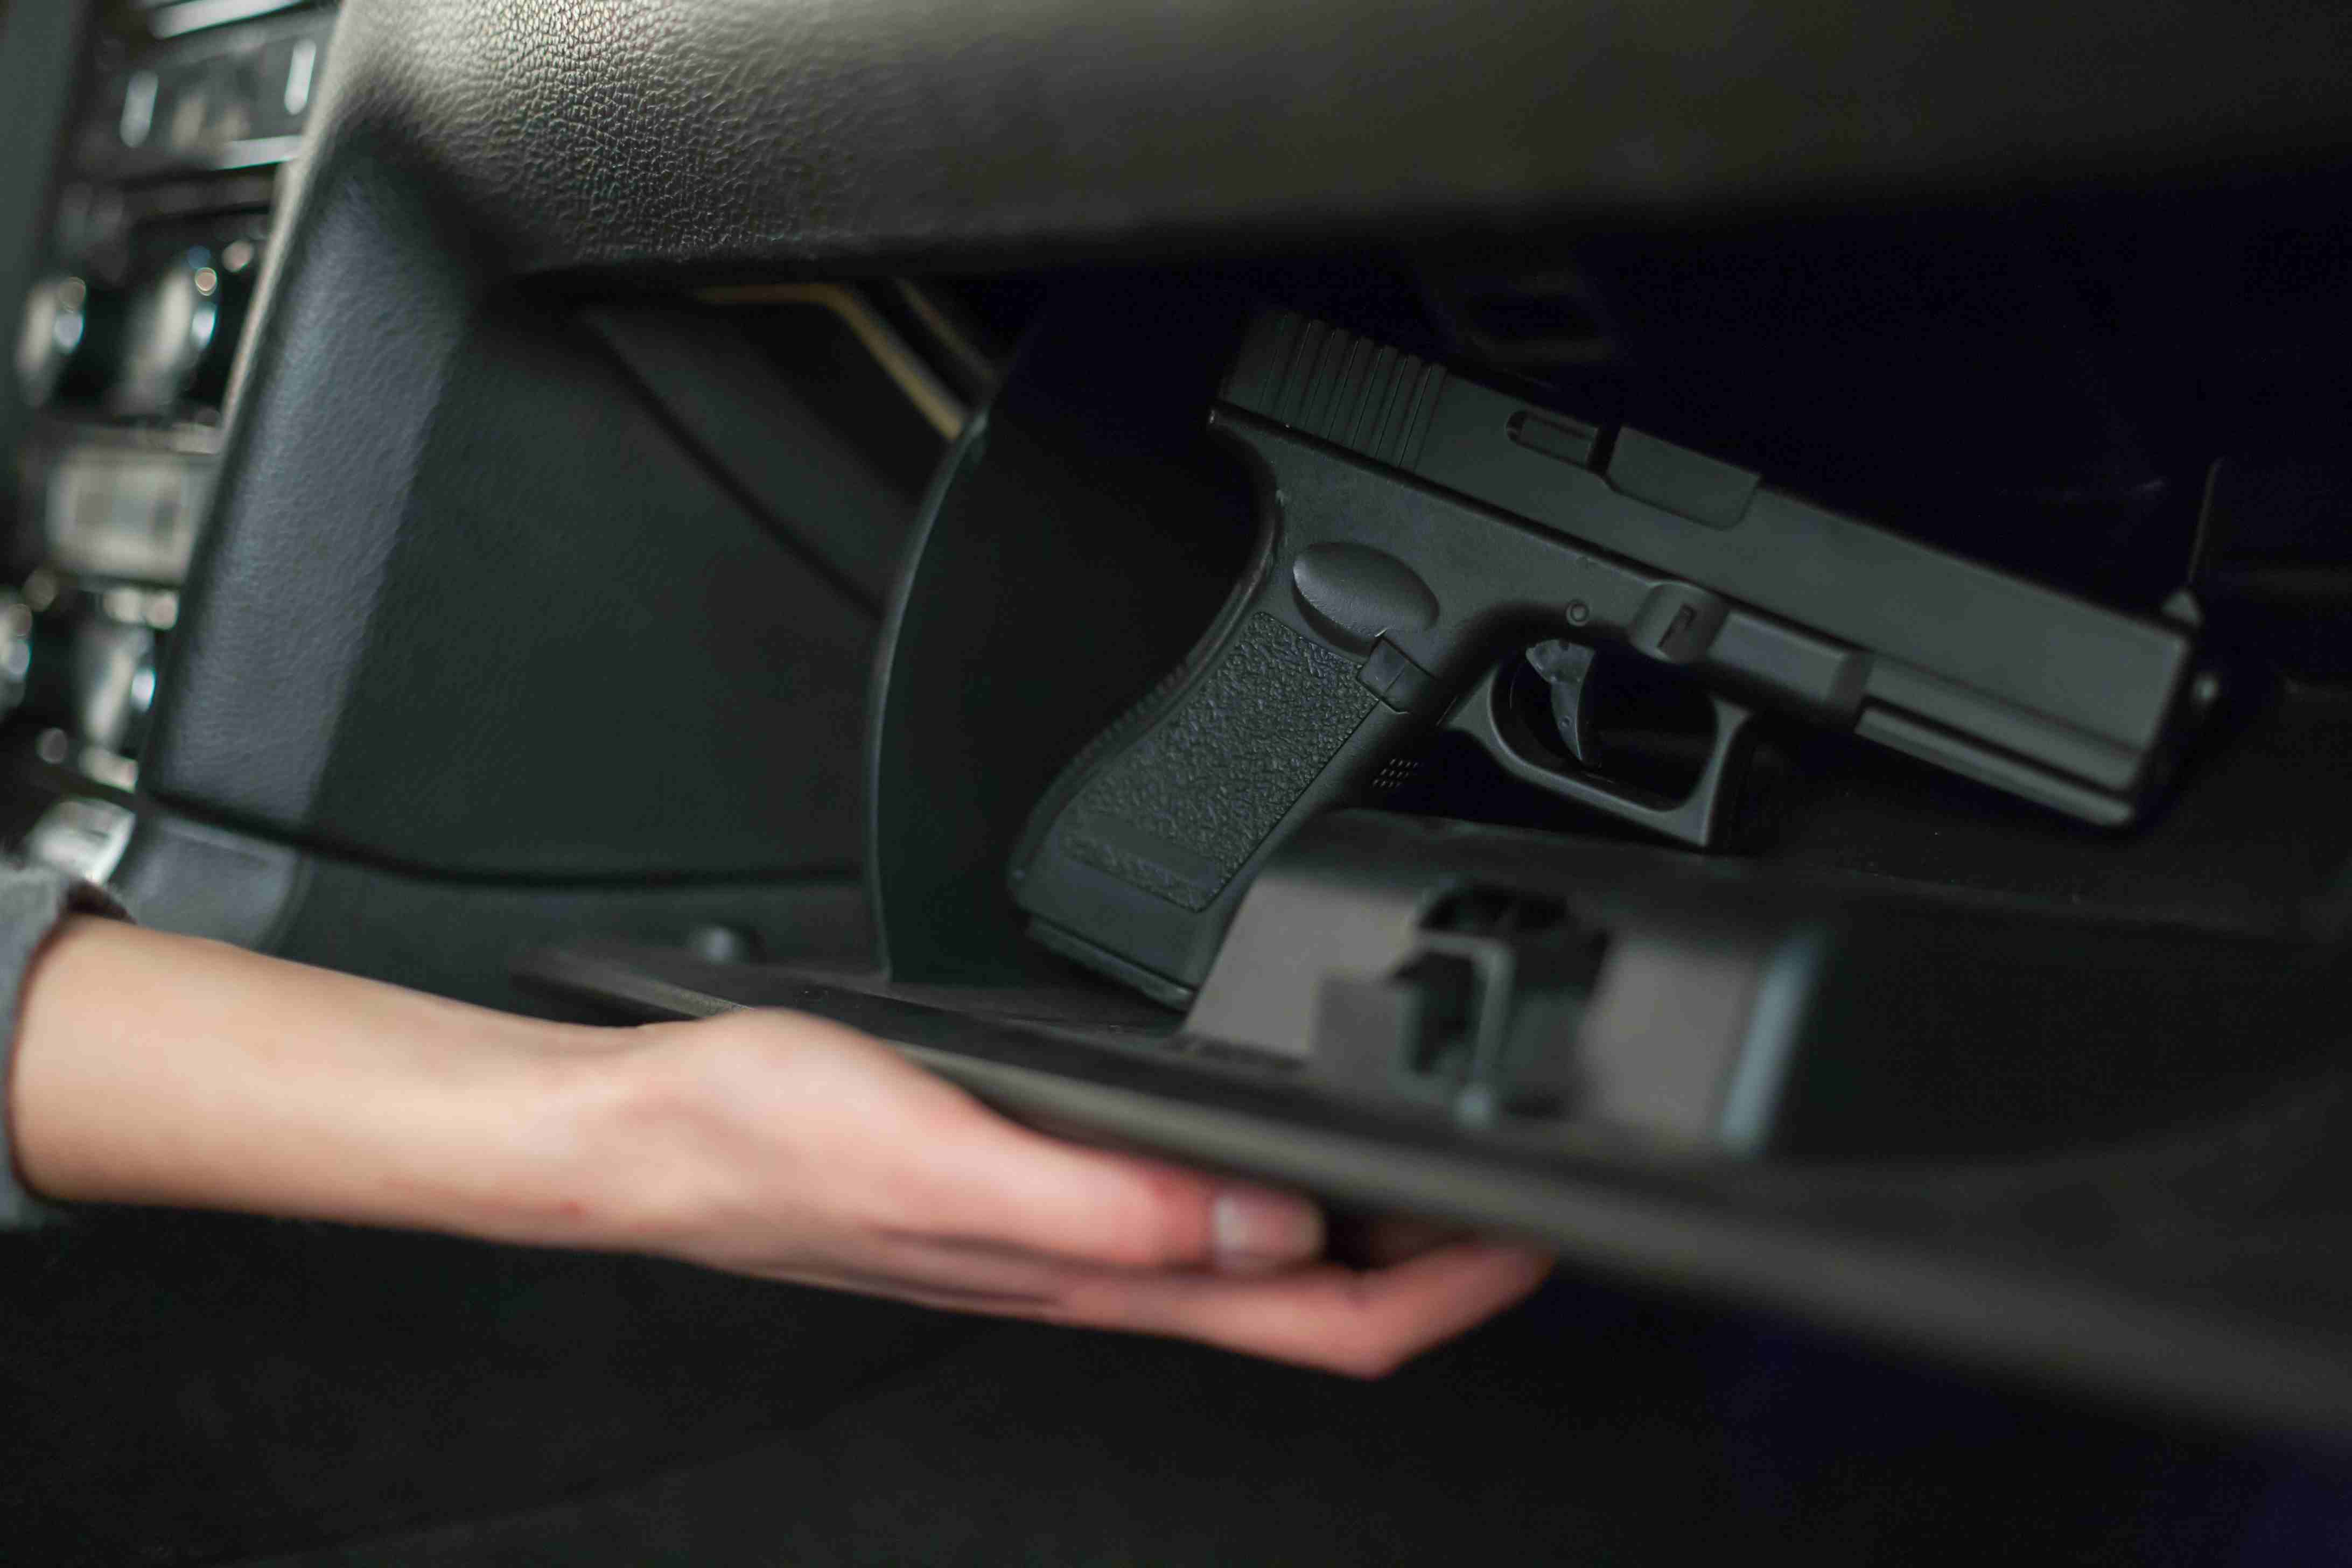 Closeup of hand pulling out a gun from a car's glove box